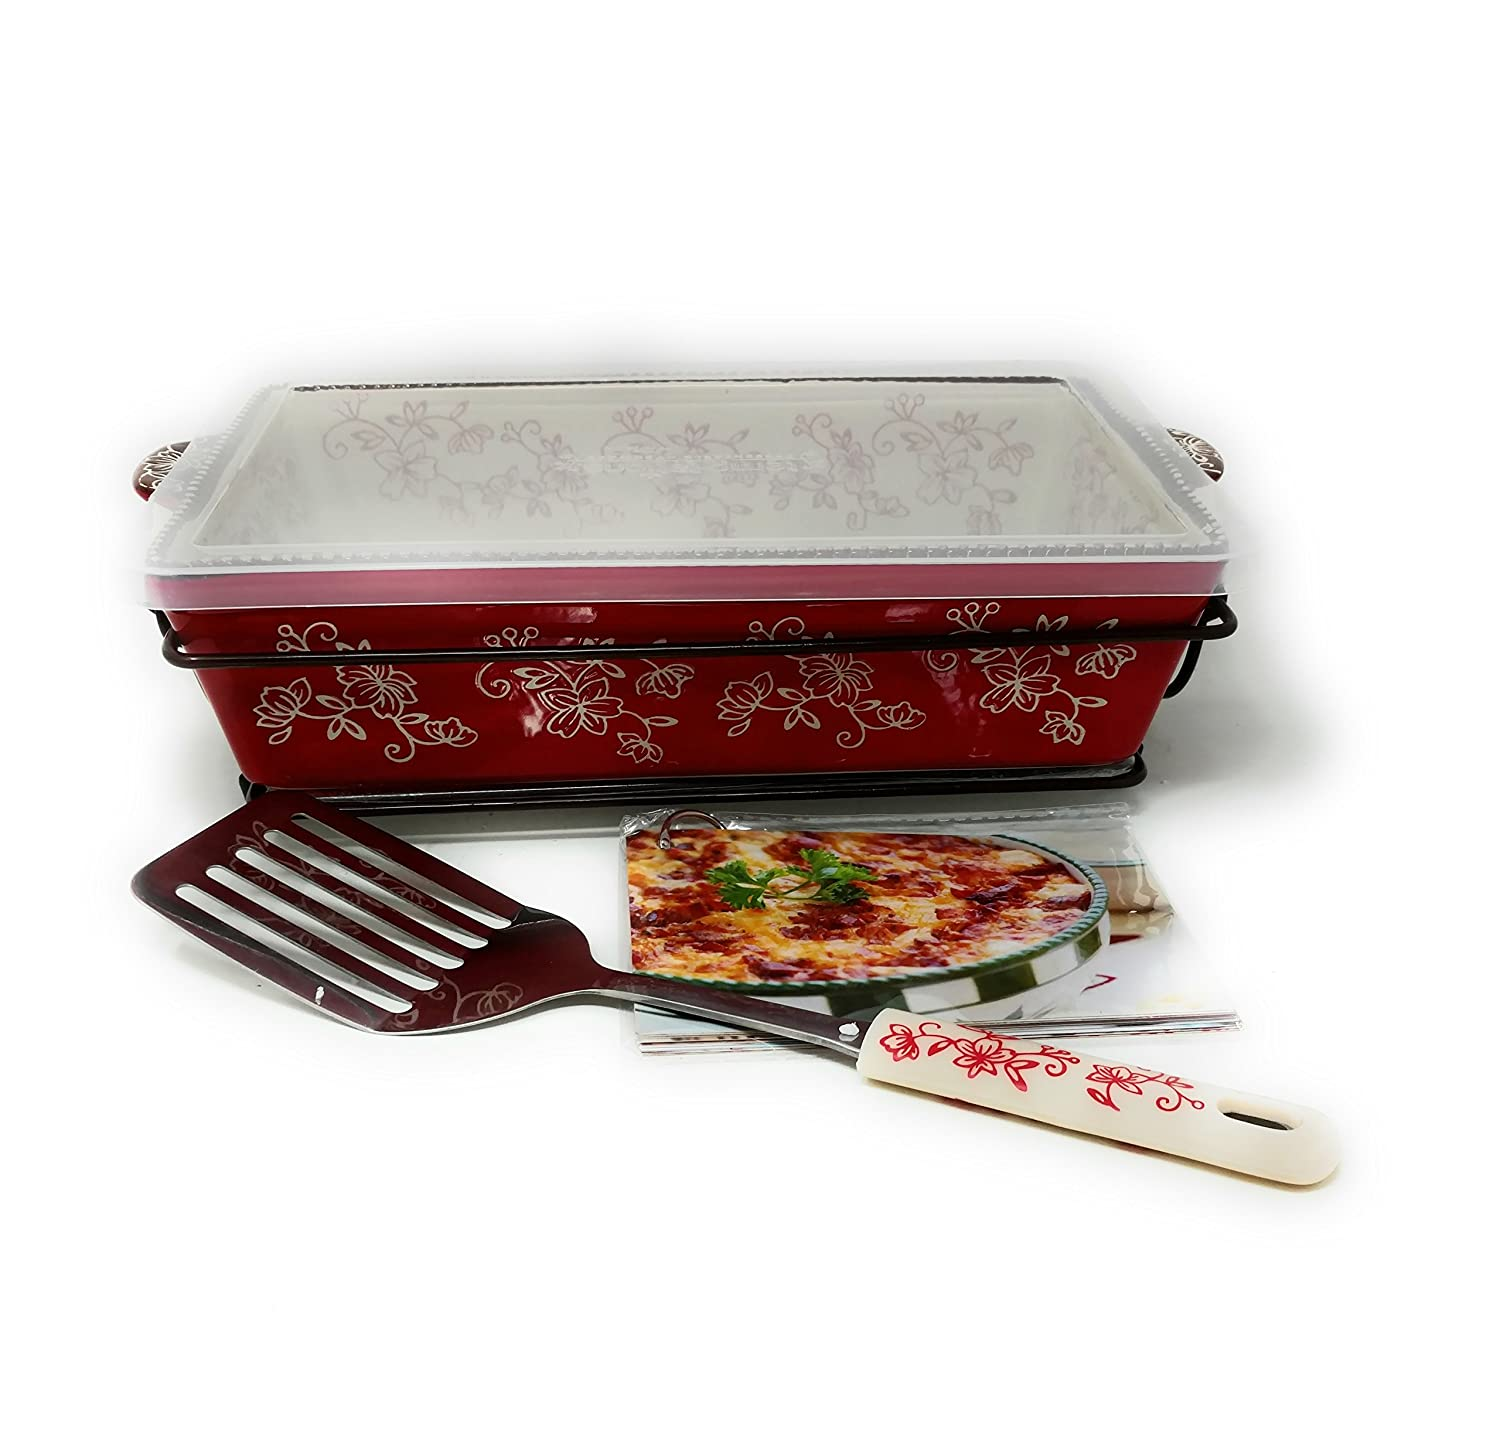 Temptations 11x7 2.5 Quart Baker, Plastic Cover, Spatula, Glass Trivet, Wire Basket & Recipe Cards (Floral Lace Red) Temp-tations